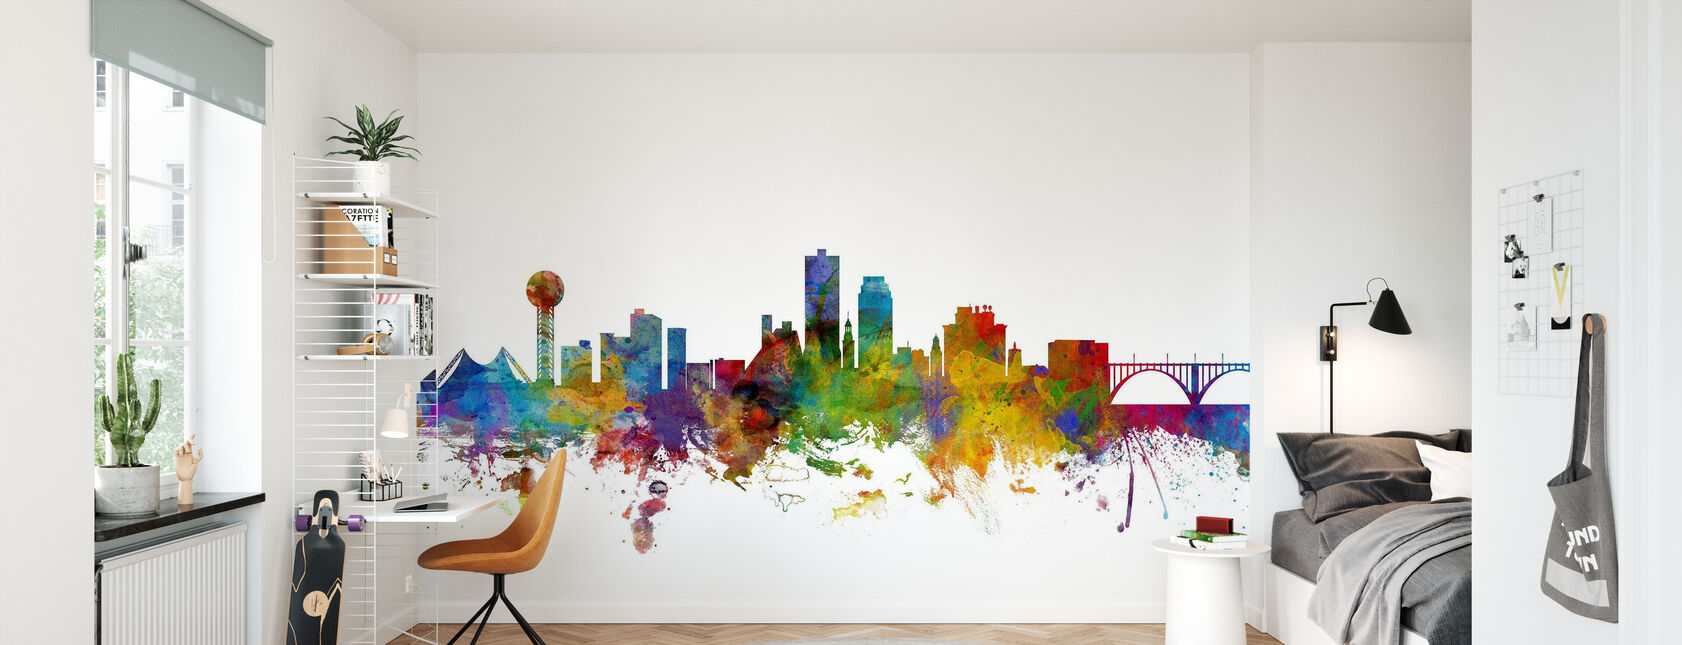 Knoxville Tennessee Skyline - Wallpaper - Kids Room